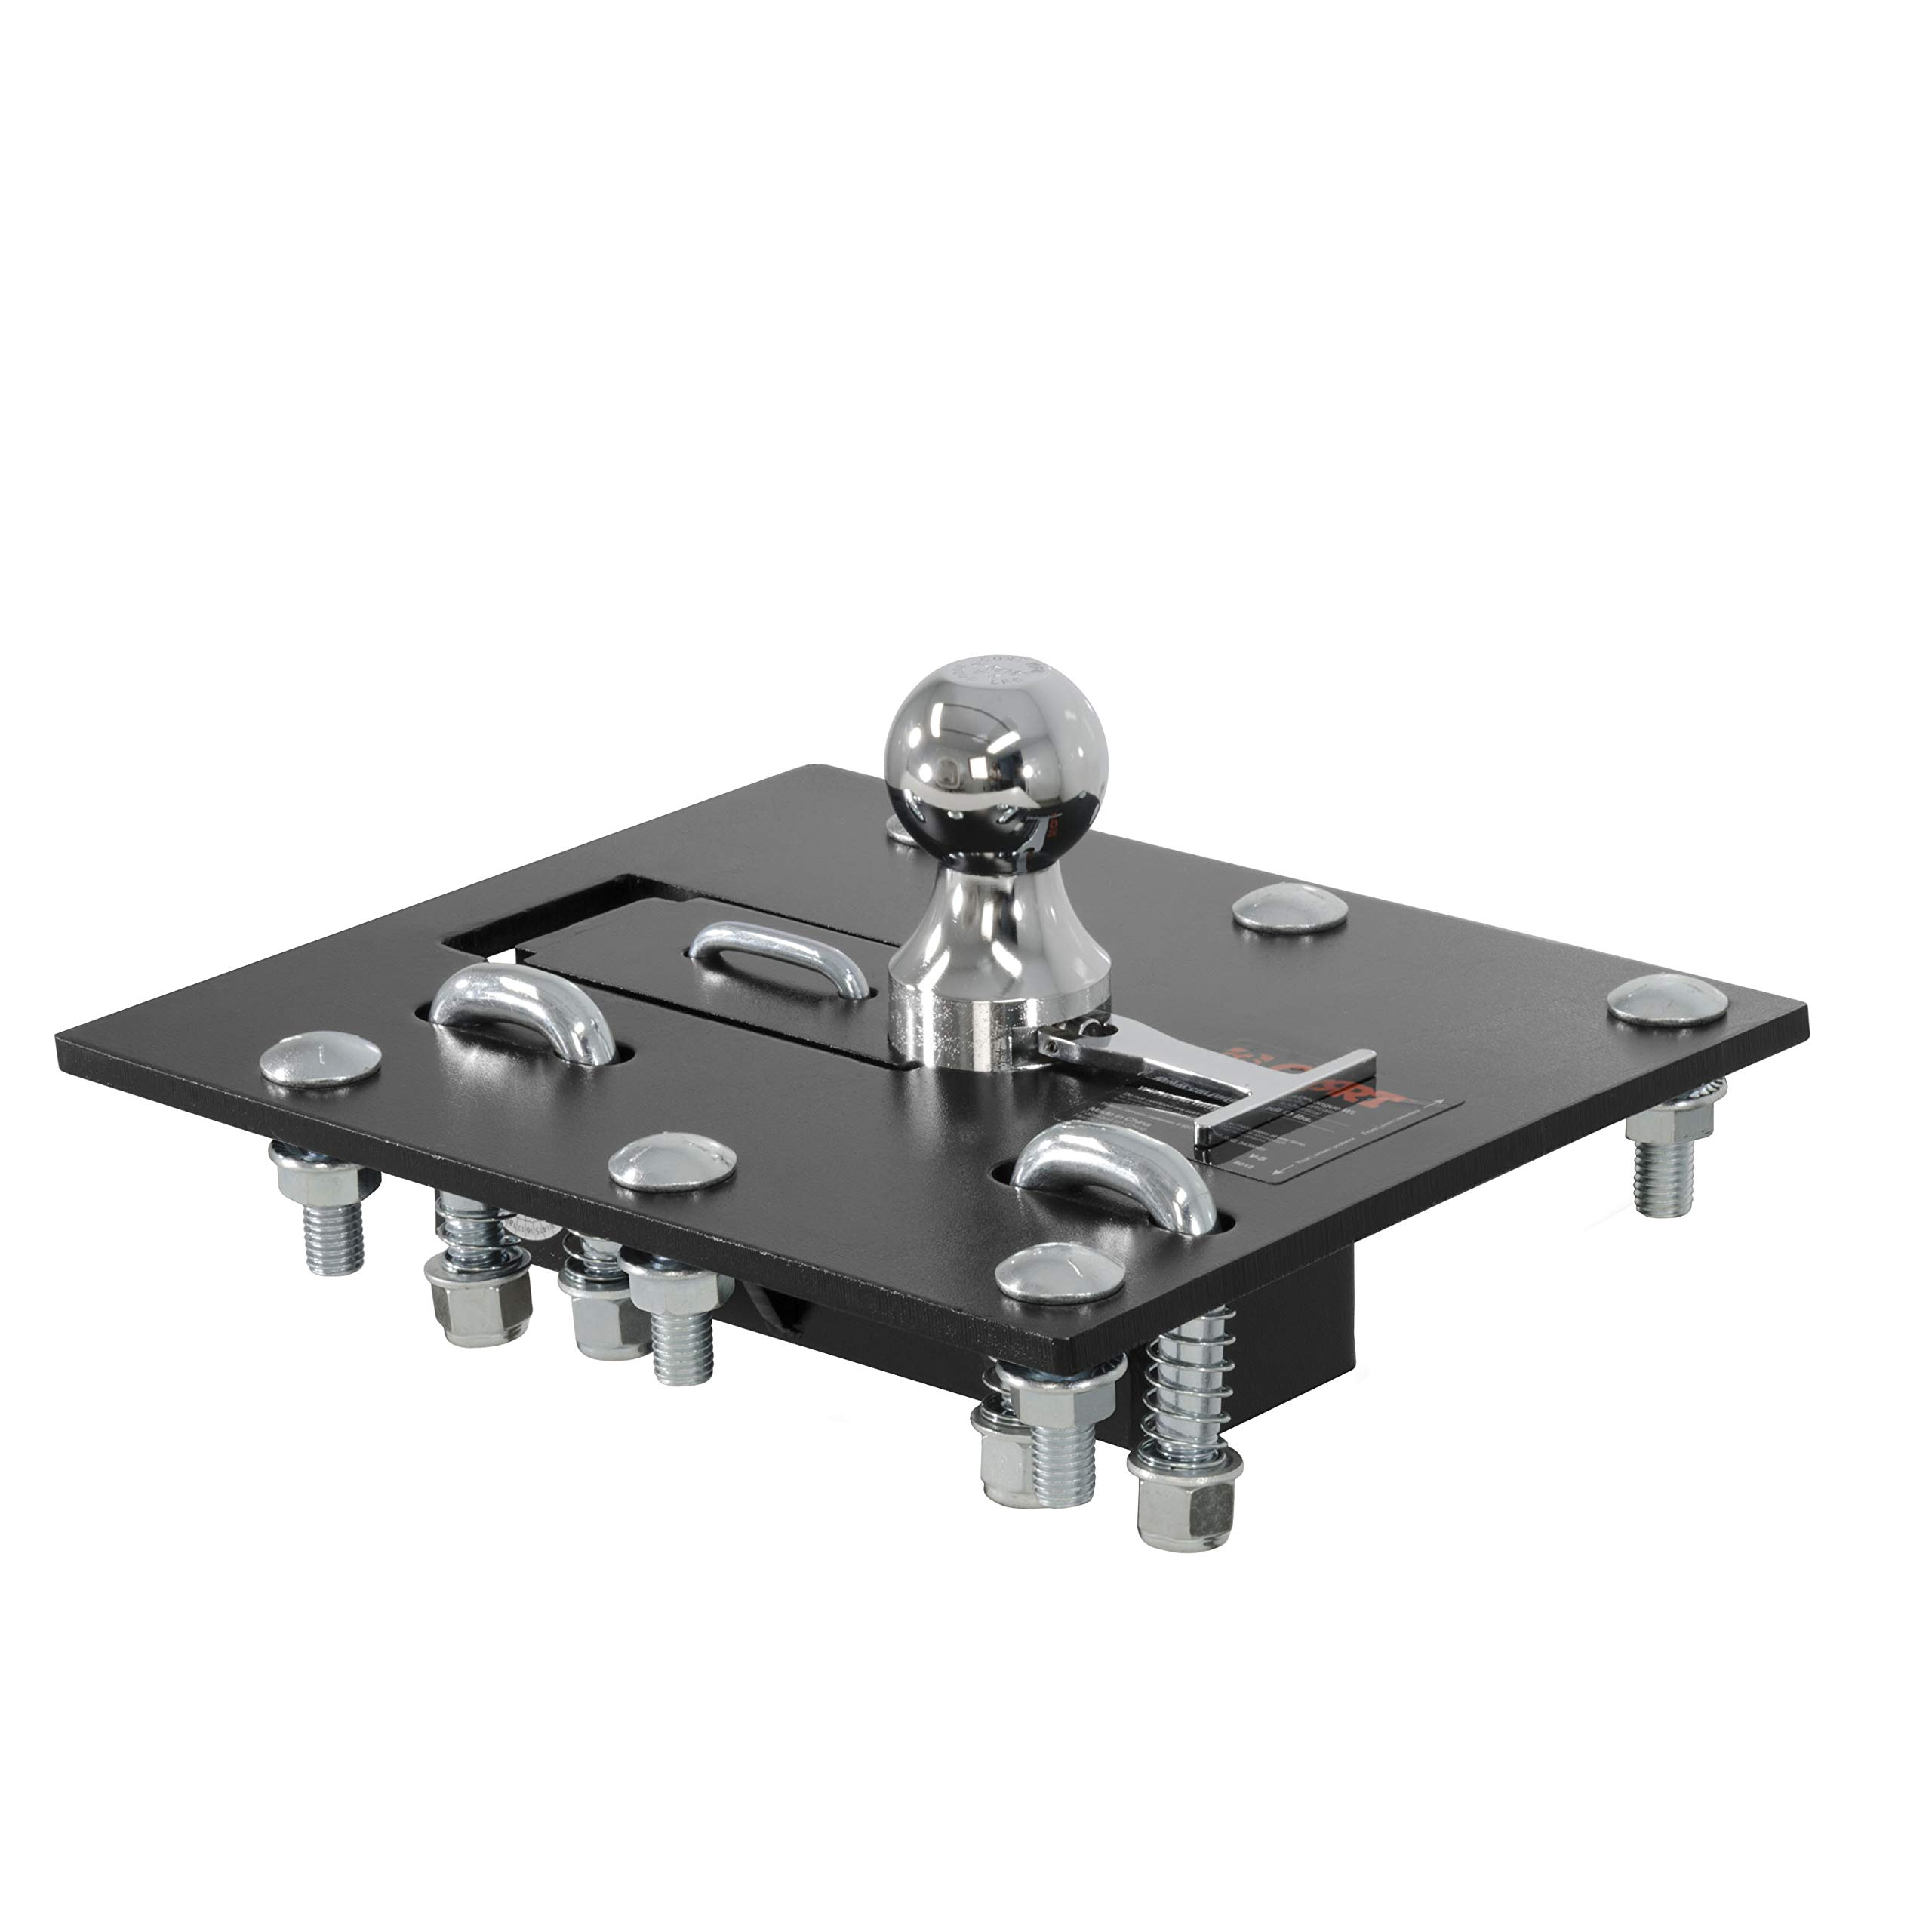 CURT 61052 Over- Black 2-5/16-Inch Bed Folding Gooseneck Hitch (30,000 lbs. GTW, 2-5/16'' Ball, Installation Brackets Sold Separately)